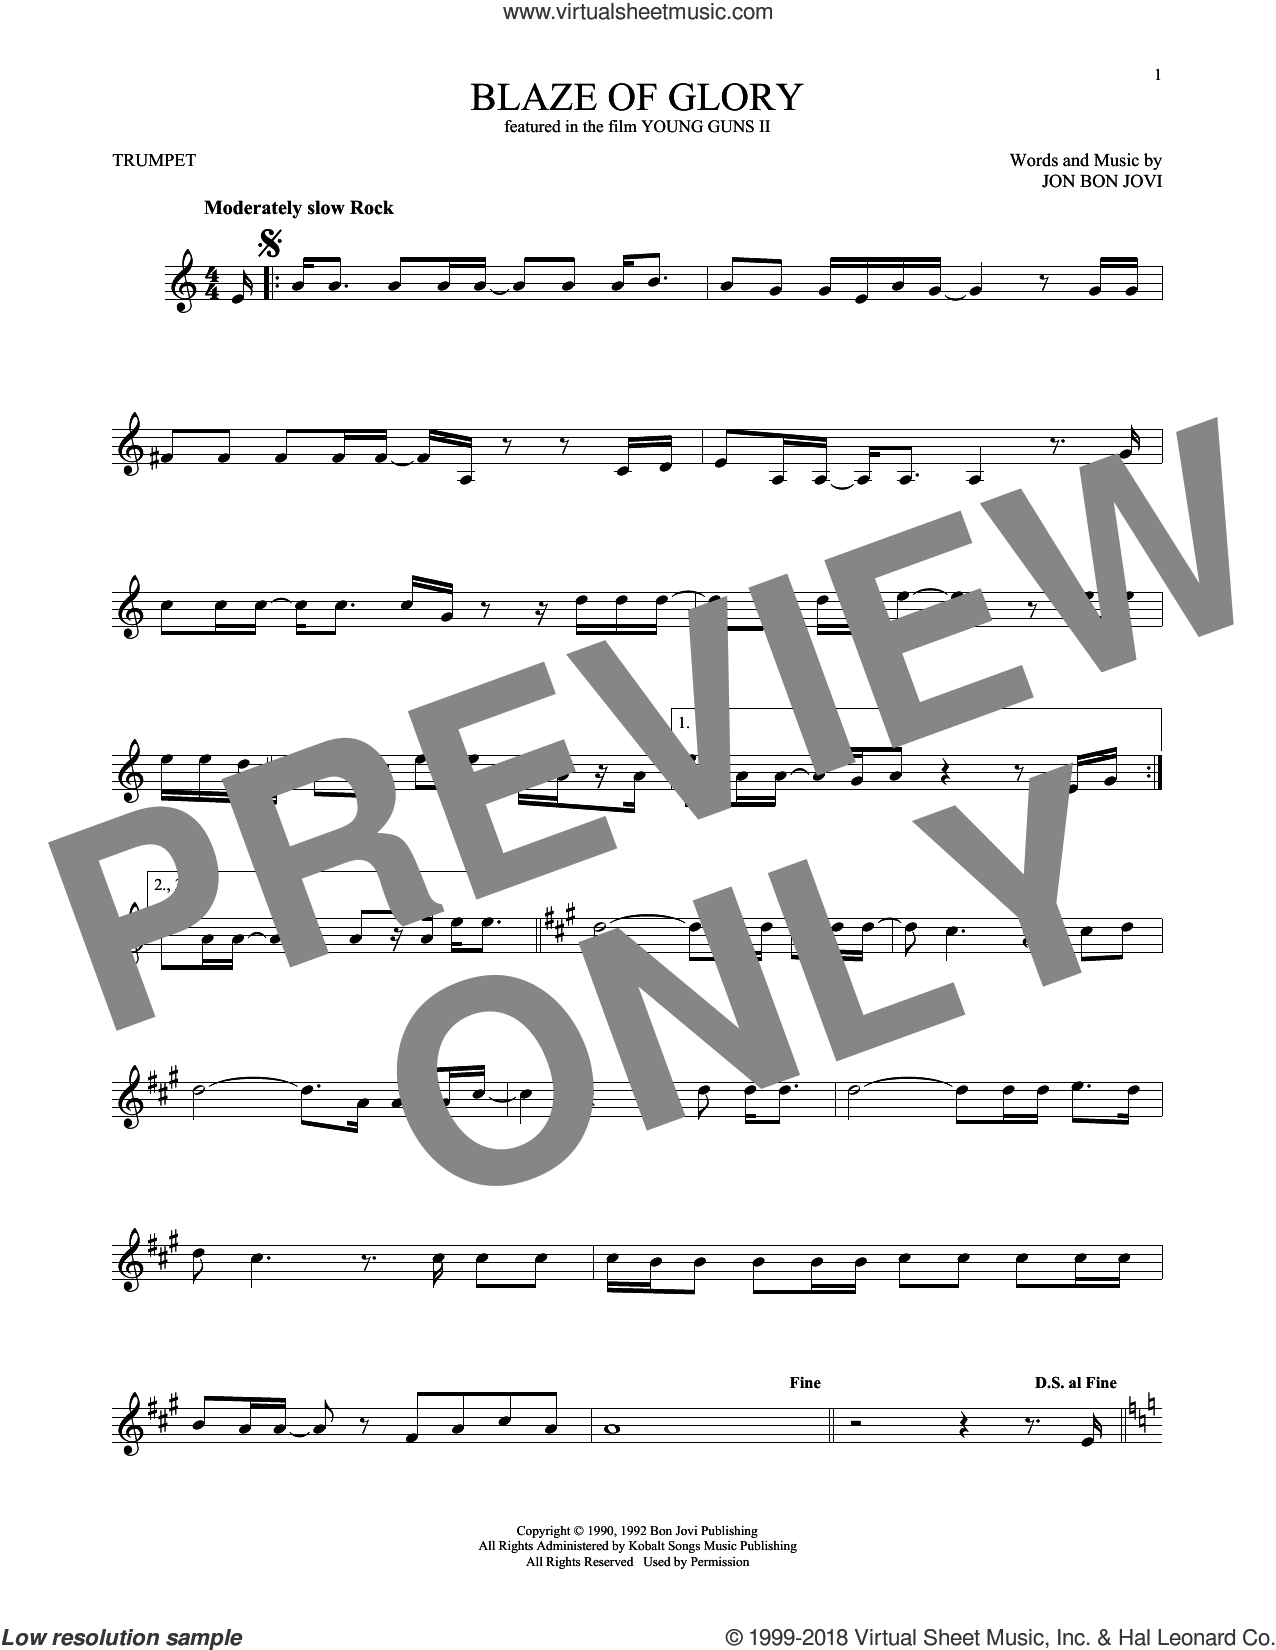 Blaze Of Glory sheet music for trumpet solo by Bon Jovi, intermediate skill level